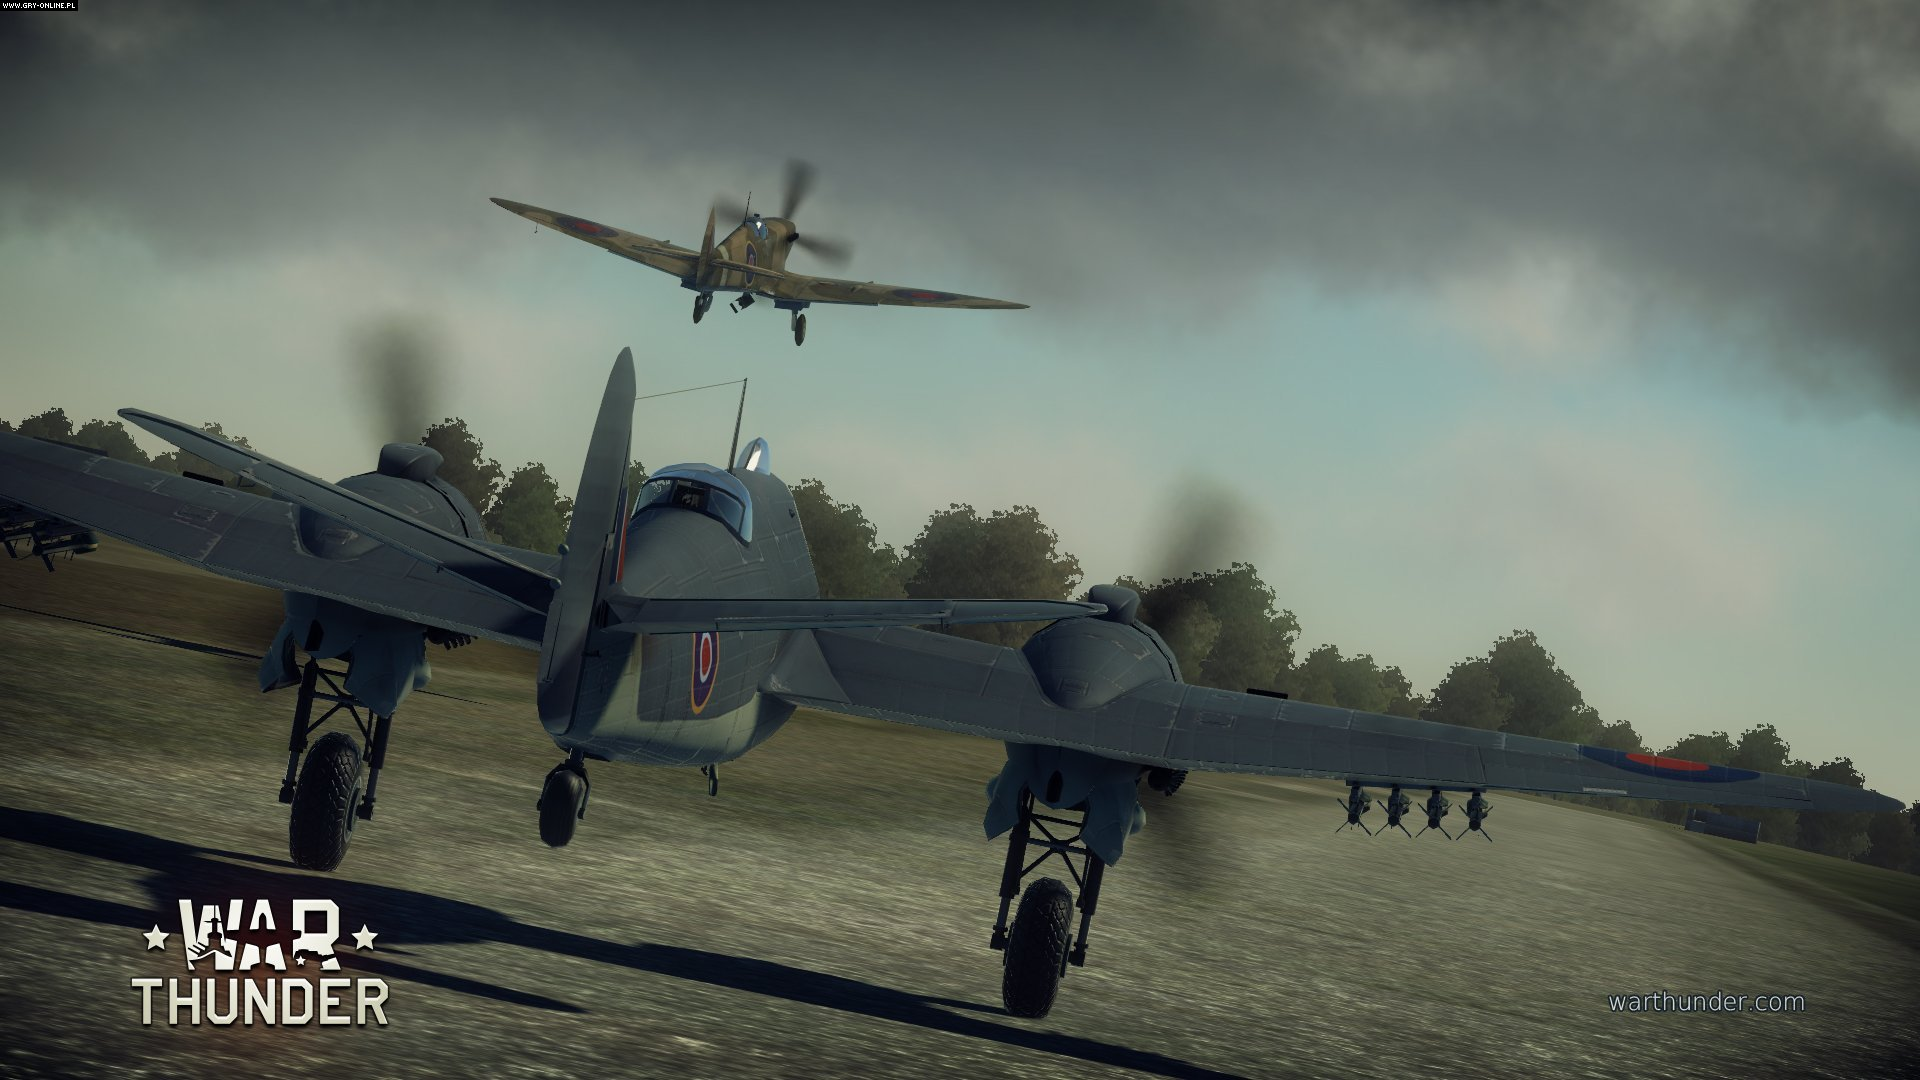 War Thunder PC, PS4, XONE Gry Screen 228/478, Gaijin Entertainment